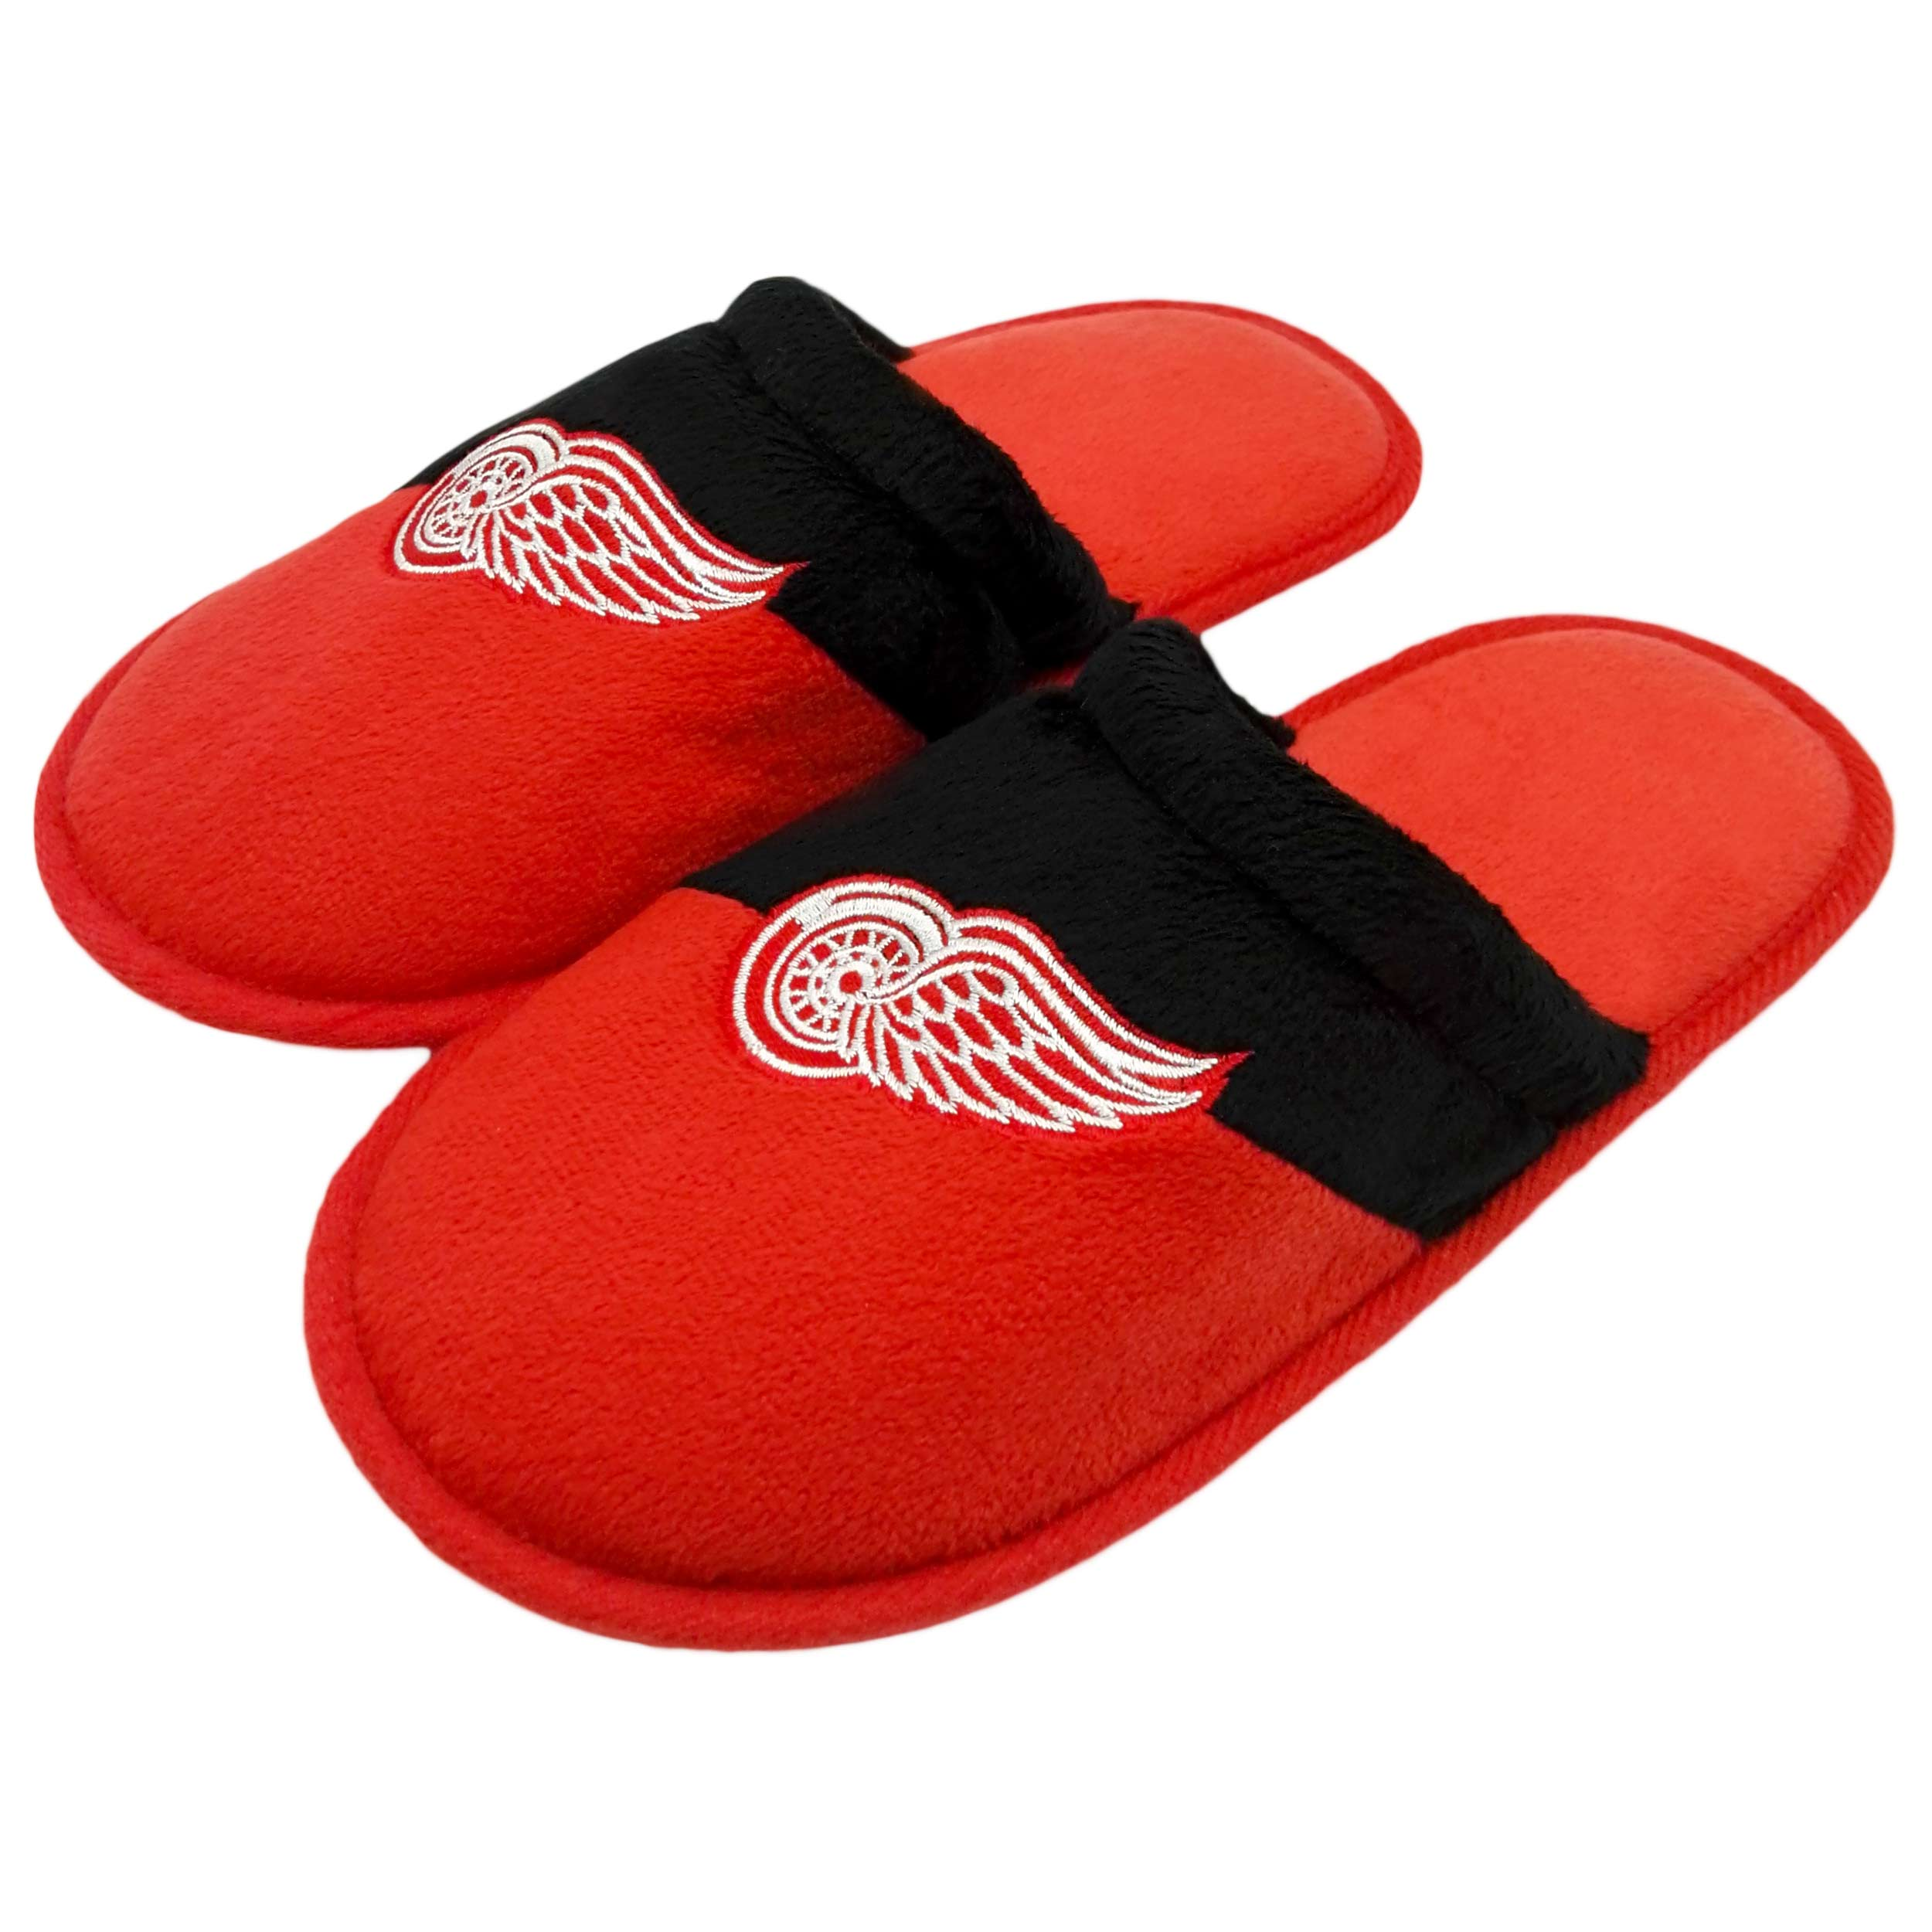 Detroit Red Wings Youth Slide Slippers